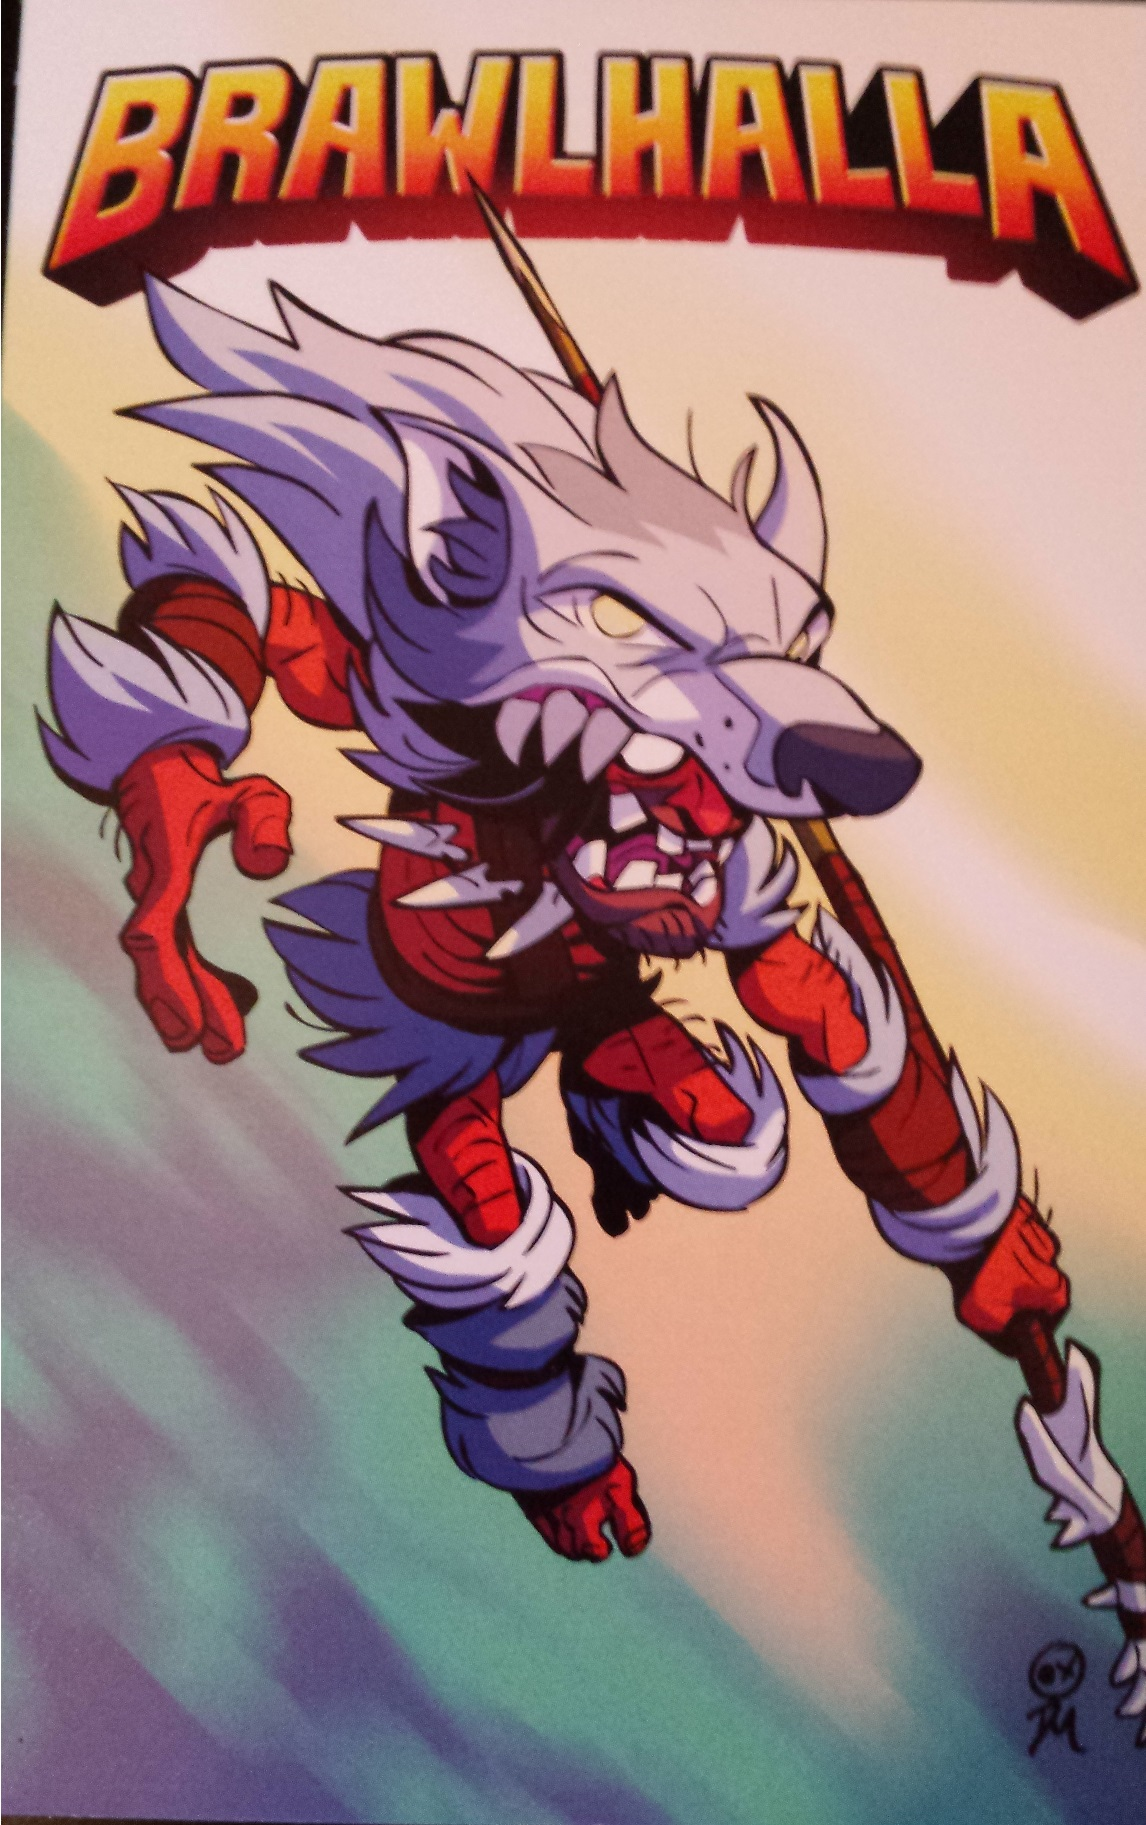 Brawlhalla! July loot crate is super!